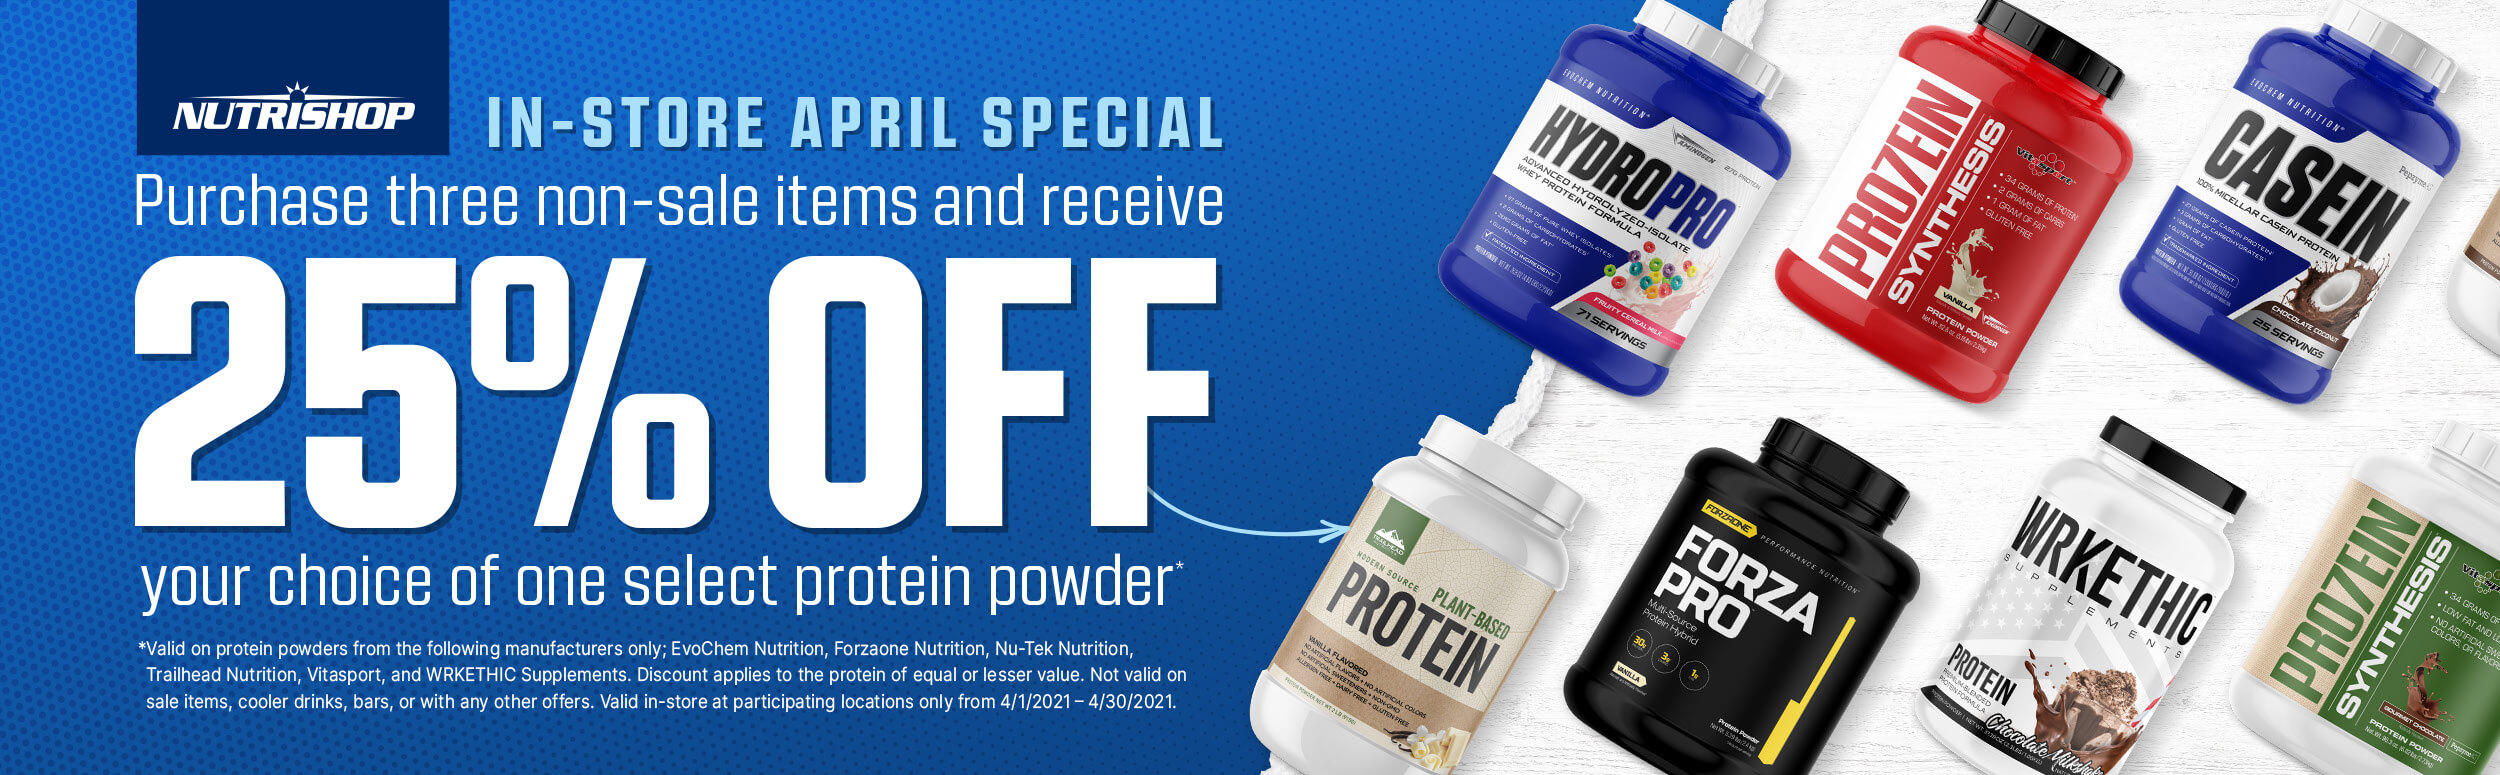 in store april special. purchase three non sale items and receive 25% off your choice of one select protein powder.